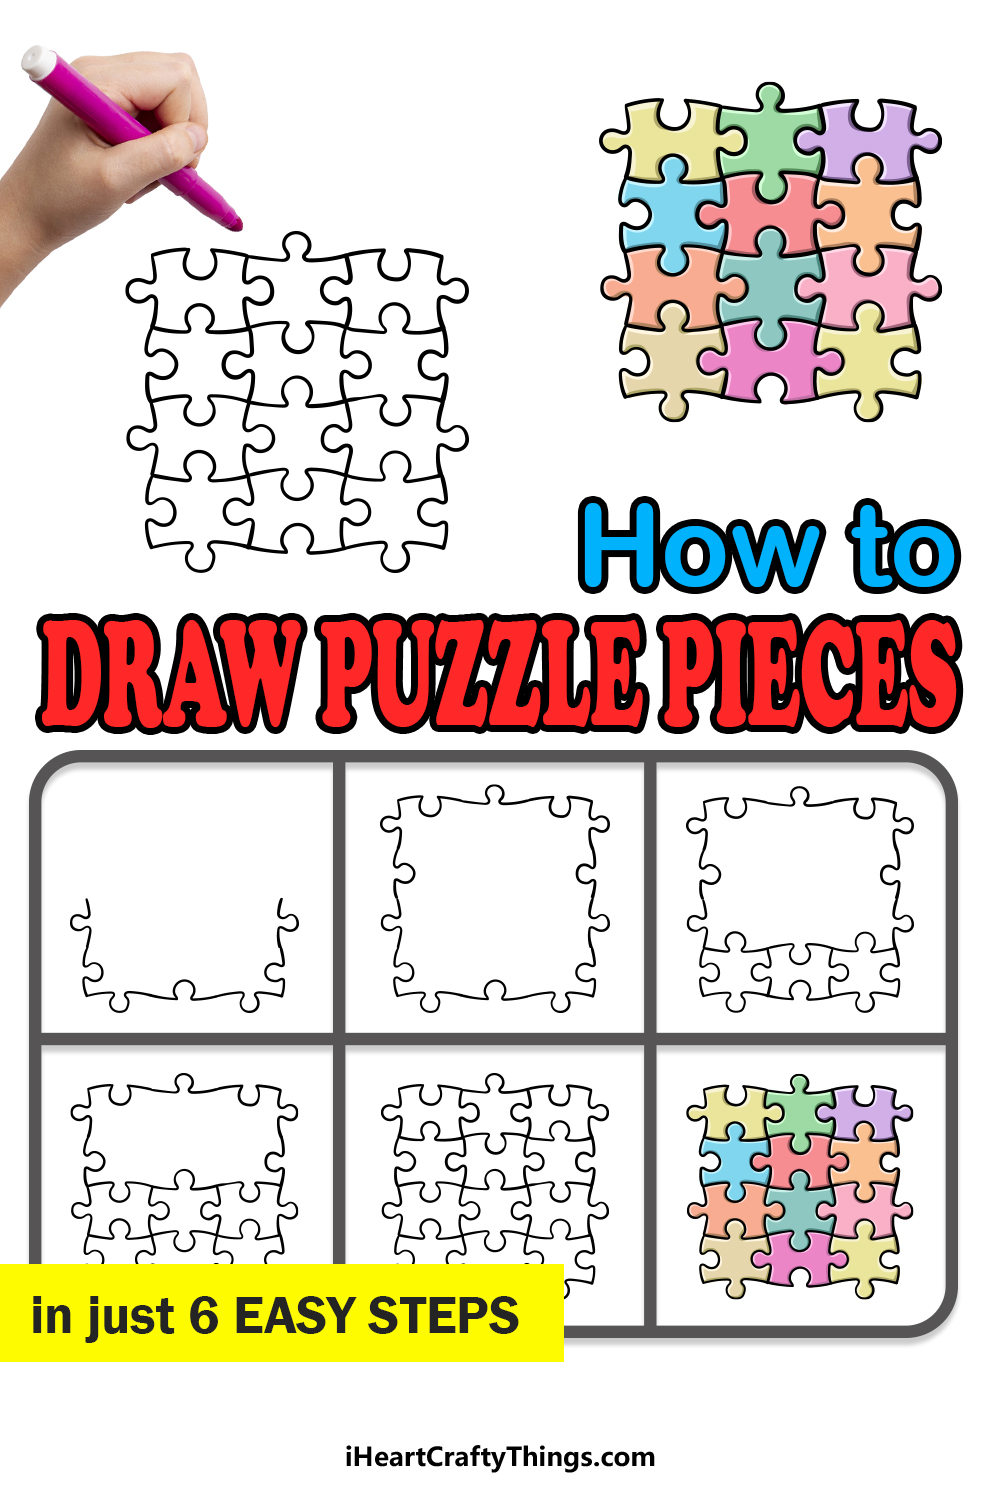 how to draw Puzzle Pieces in 6 easy steps